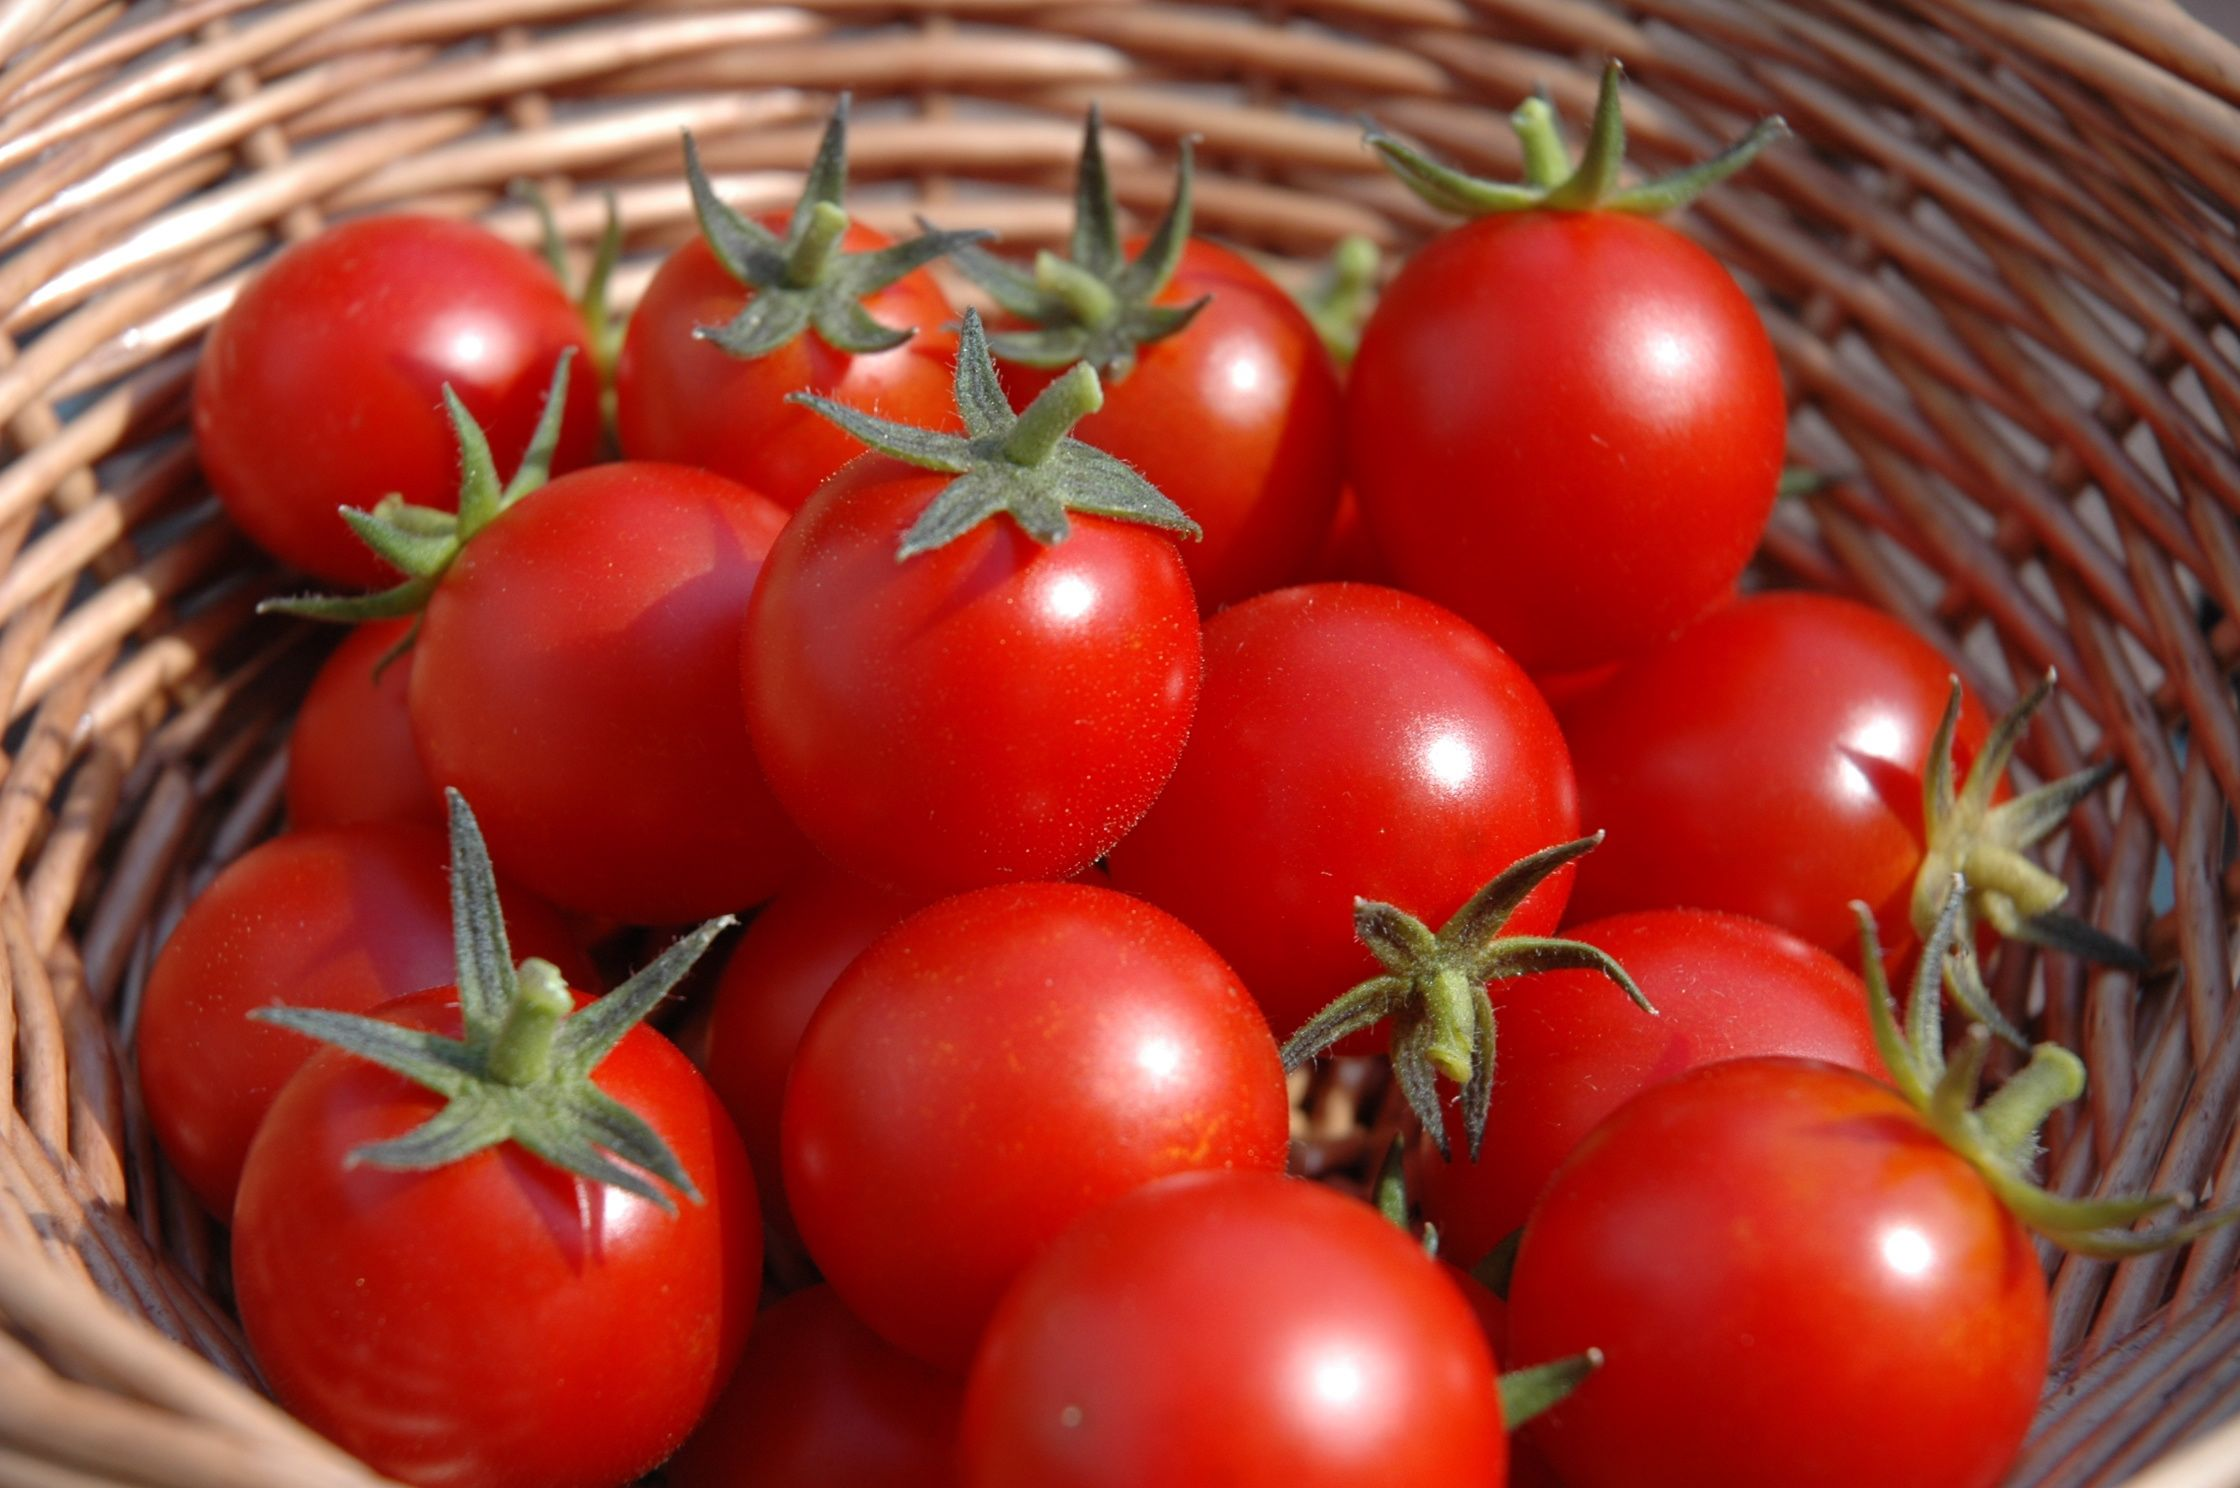 Growing cherry tomatoes with Tomato Dirt